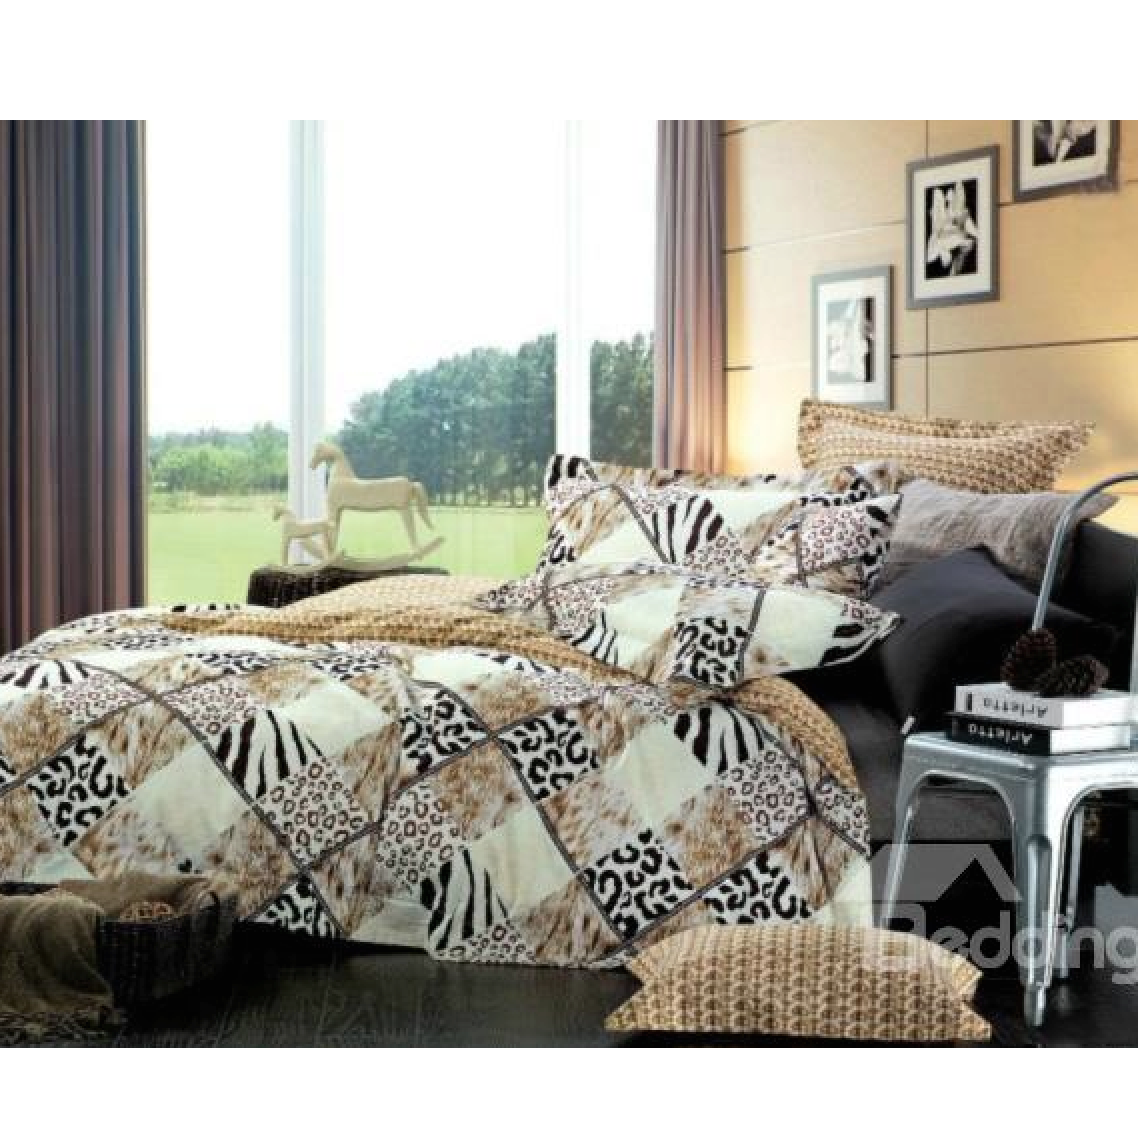 Leopard and Fur Print 4-Piece Cotton Duvet Cover Set